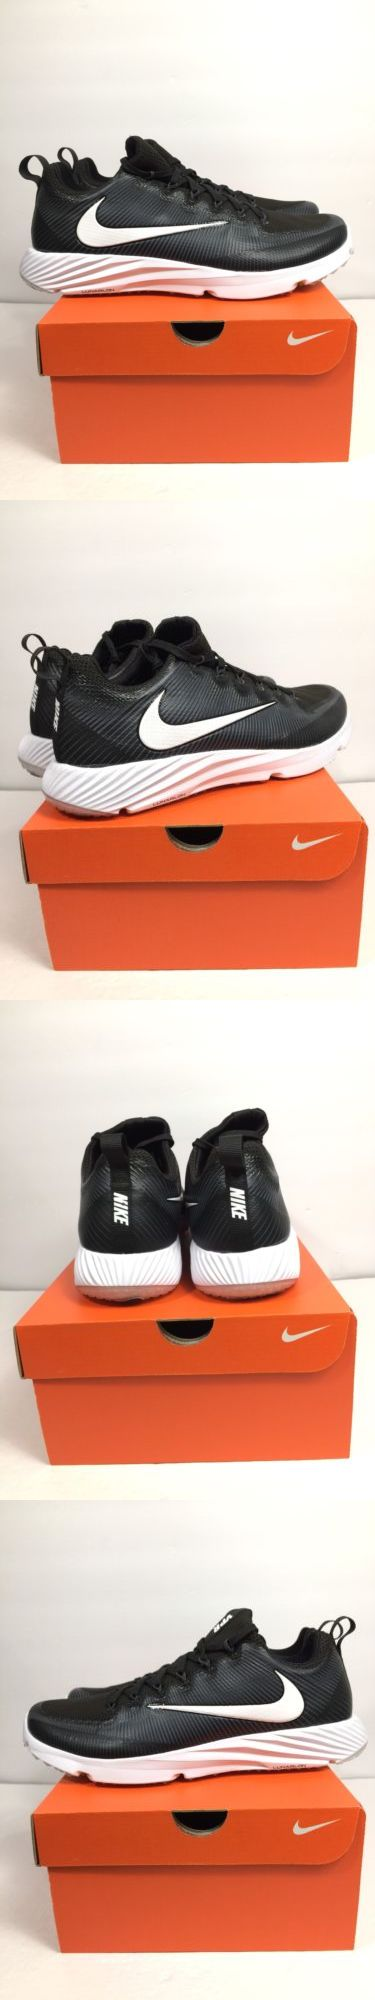 Footwear 159154: Nike Vapor Speed Turf Trainers Mens Black White Size 12 833408 017 -> BUY IT NOW ONLY: $83.69 on eBay!